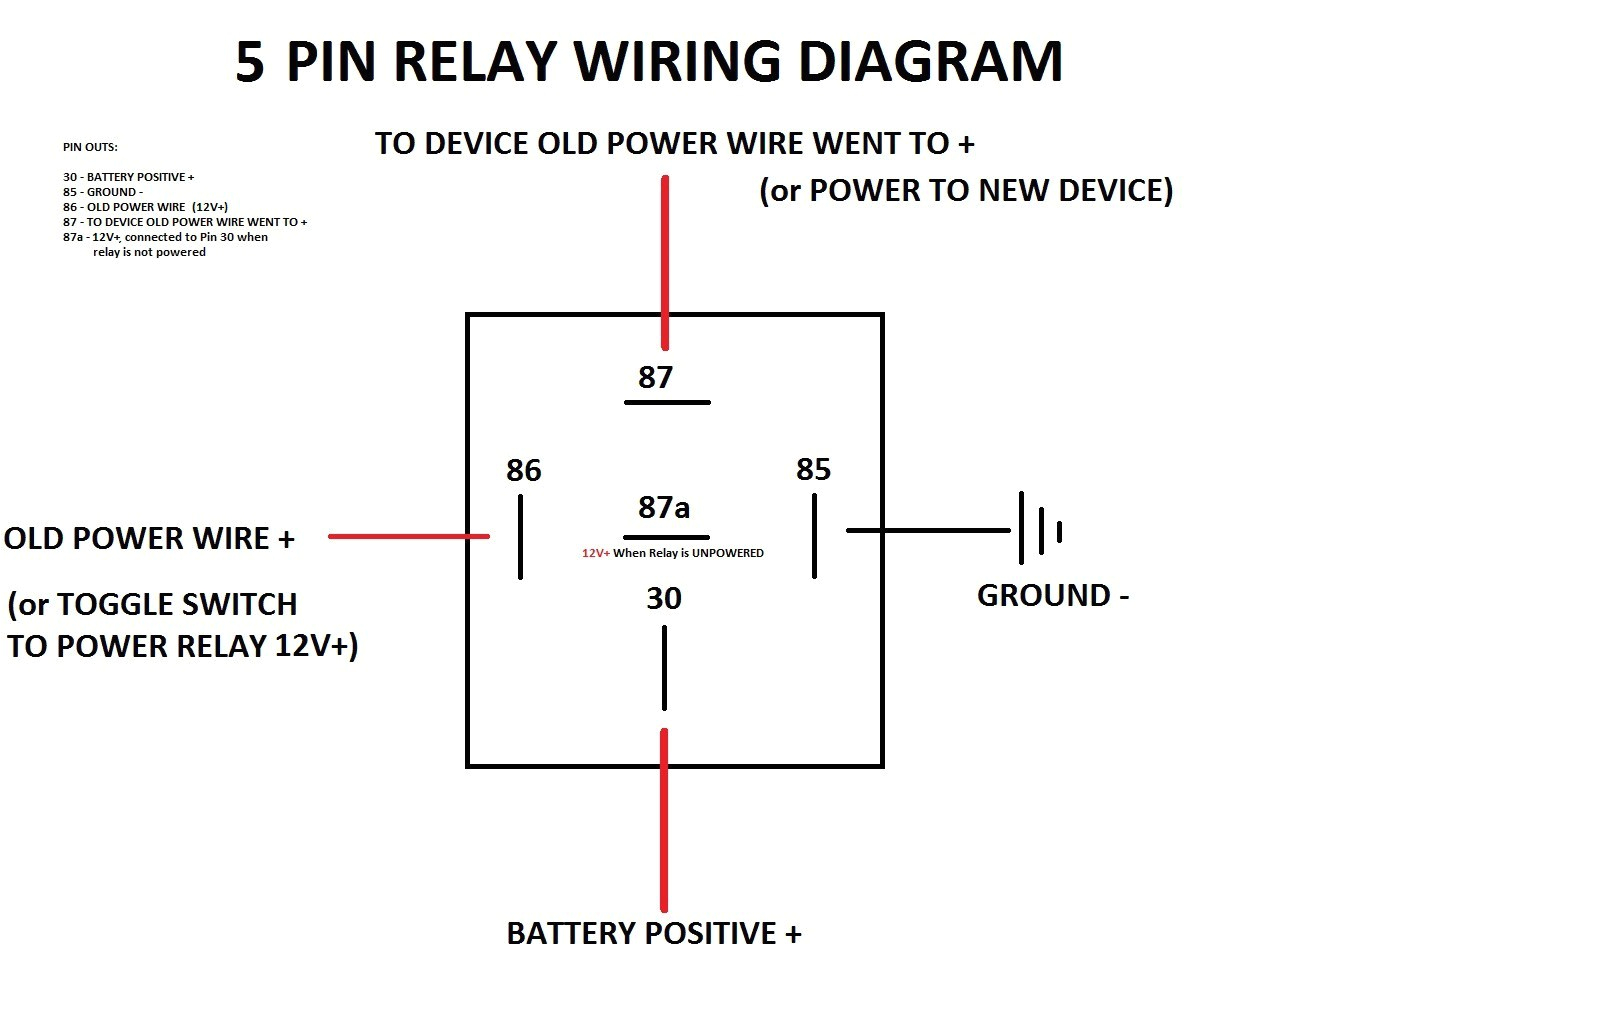 previous image next image bosch relay wiring diagram fog lights best 5 pin